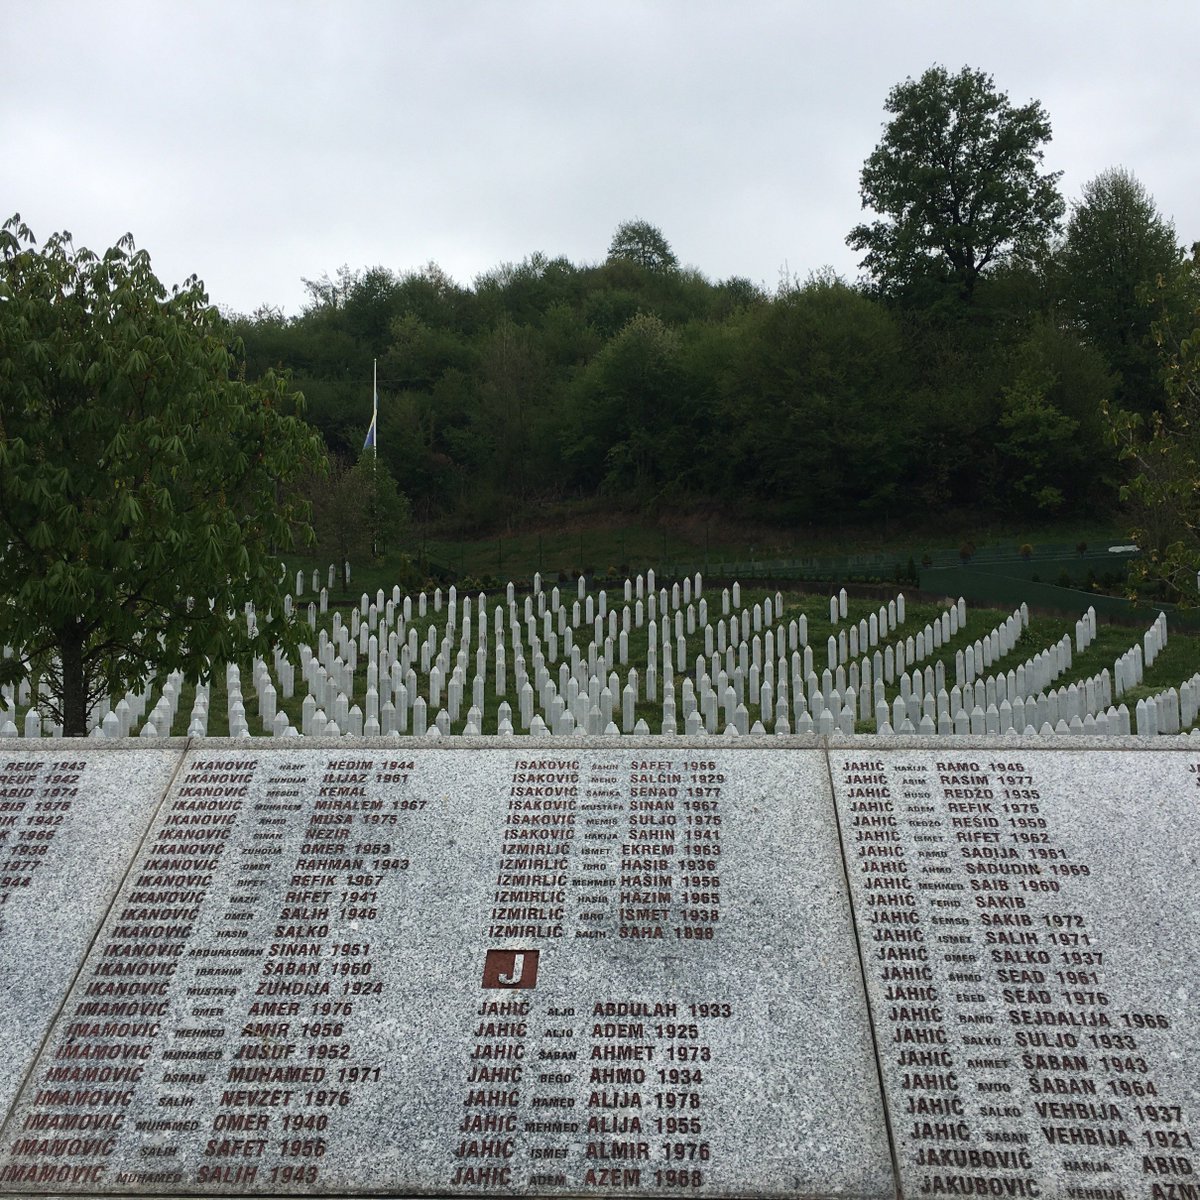 test Twitter Media - Remembering Srebrenica: Trans-generational memory, denial, and accountability https://t.co/0xR9vIcQCa https://t.co/N6caD74HWY